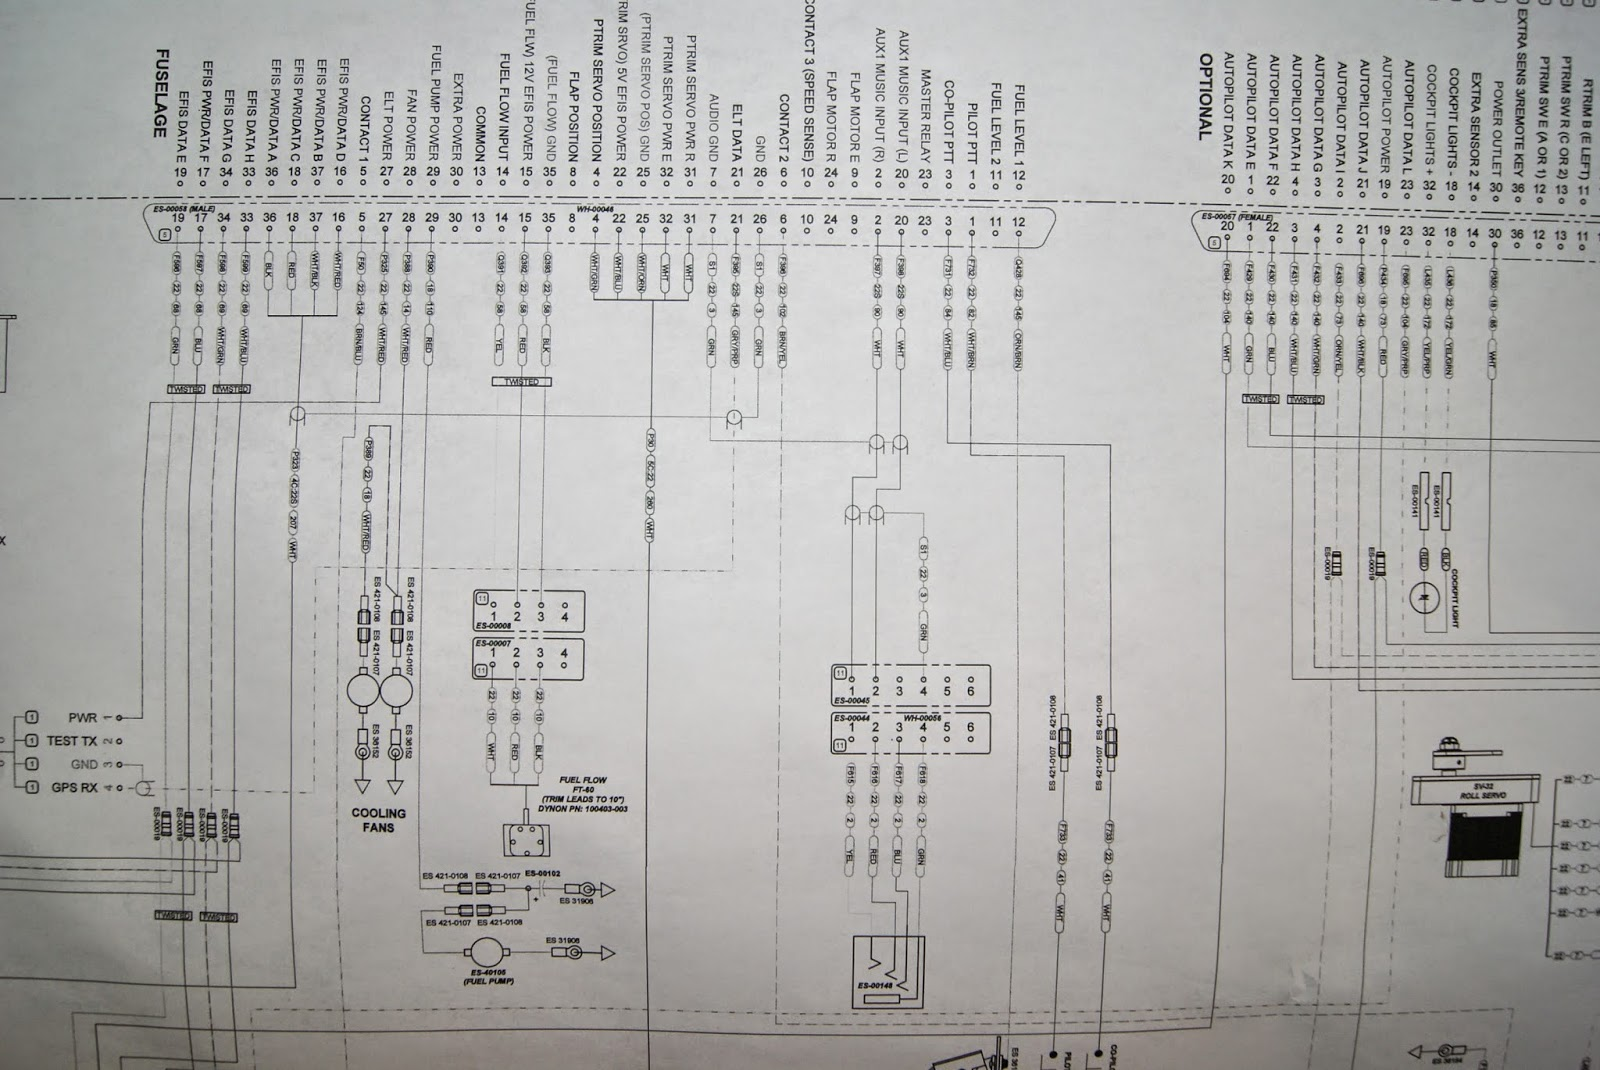 Audio Jack Wiring Diagram Dell Furthermore Stereo Jack Wiring Diagram